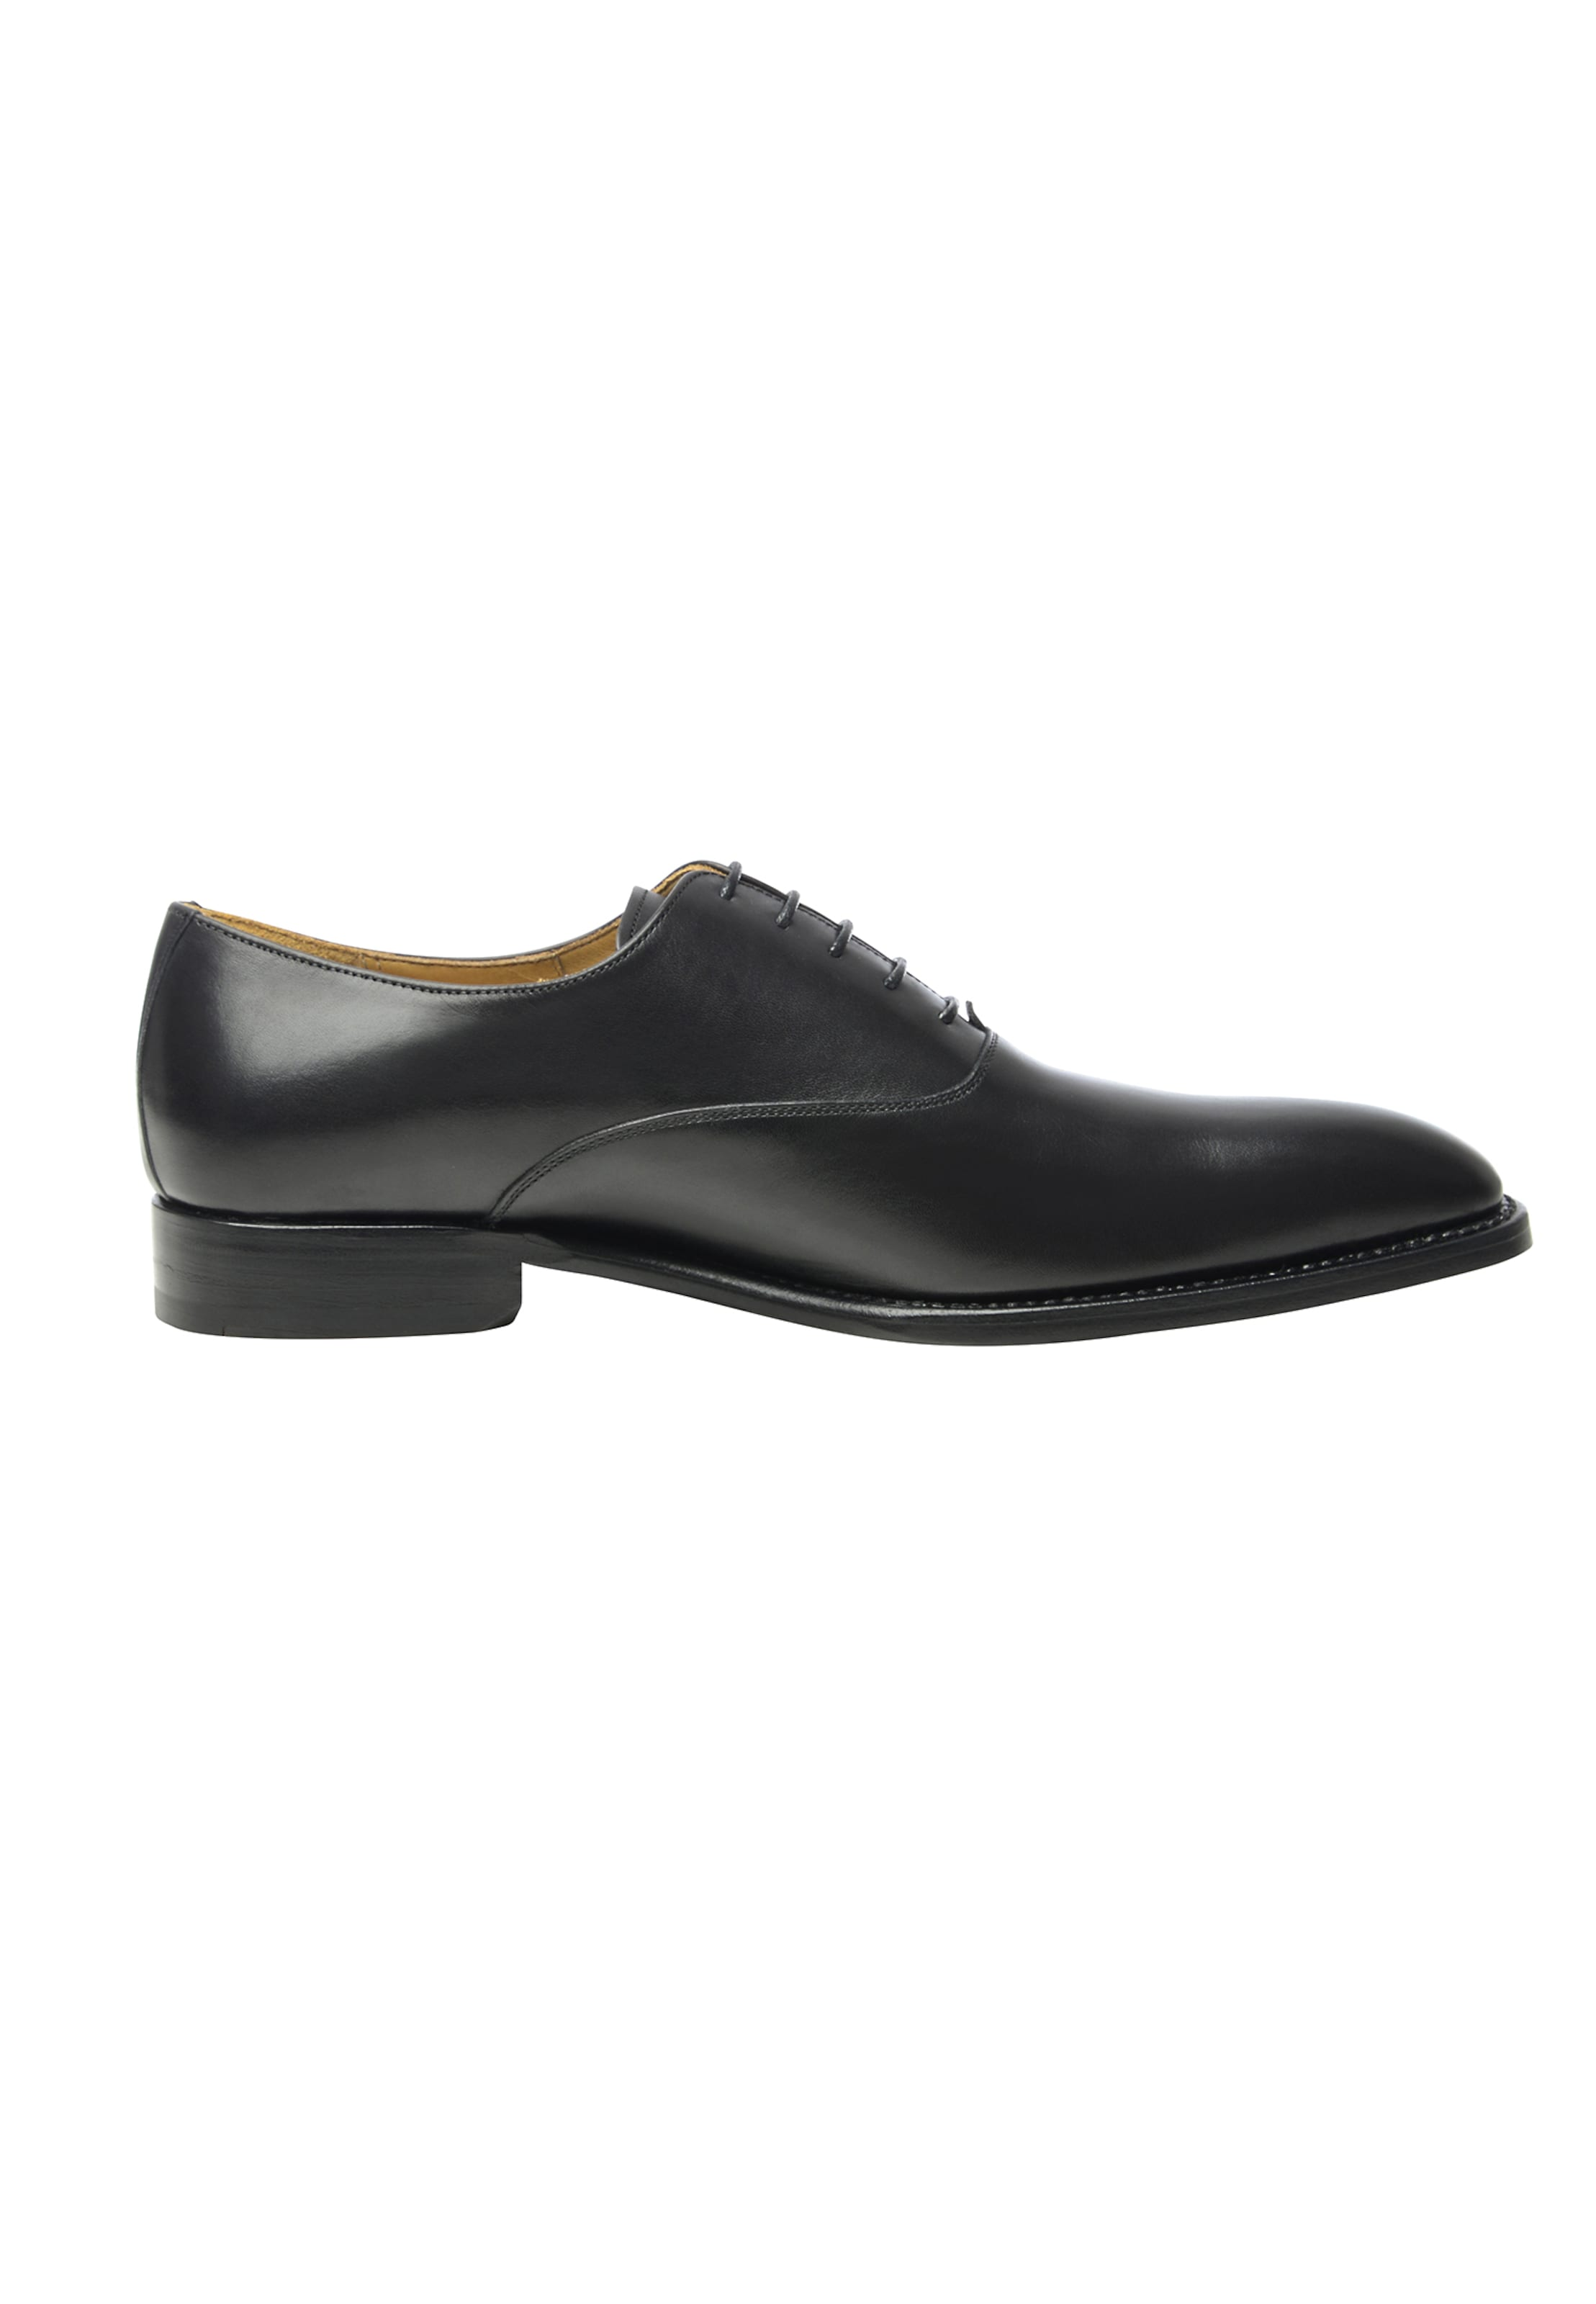 Shoepassion Businessschuhe 'no538' 'no538' Schwarz Businessschuhe 'no538' Businessschuhe In Shoepassion Schwarz Shoepassion In nmwNvO80